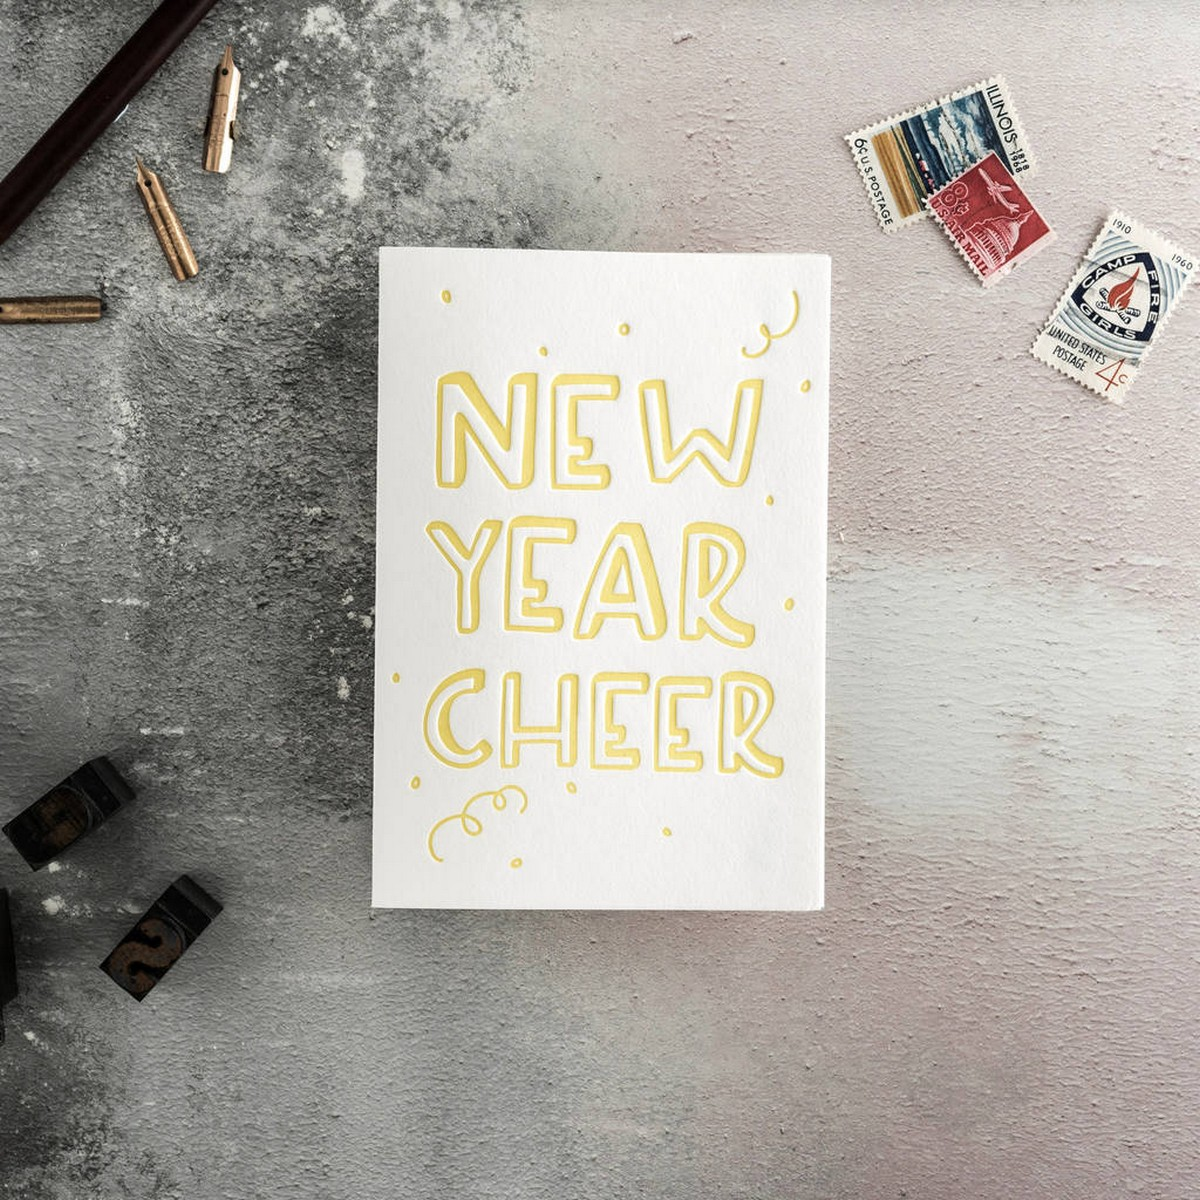 Say Goodbye to 2017 and welcome 2018 with these beautiful new year greeting cards.